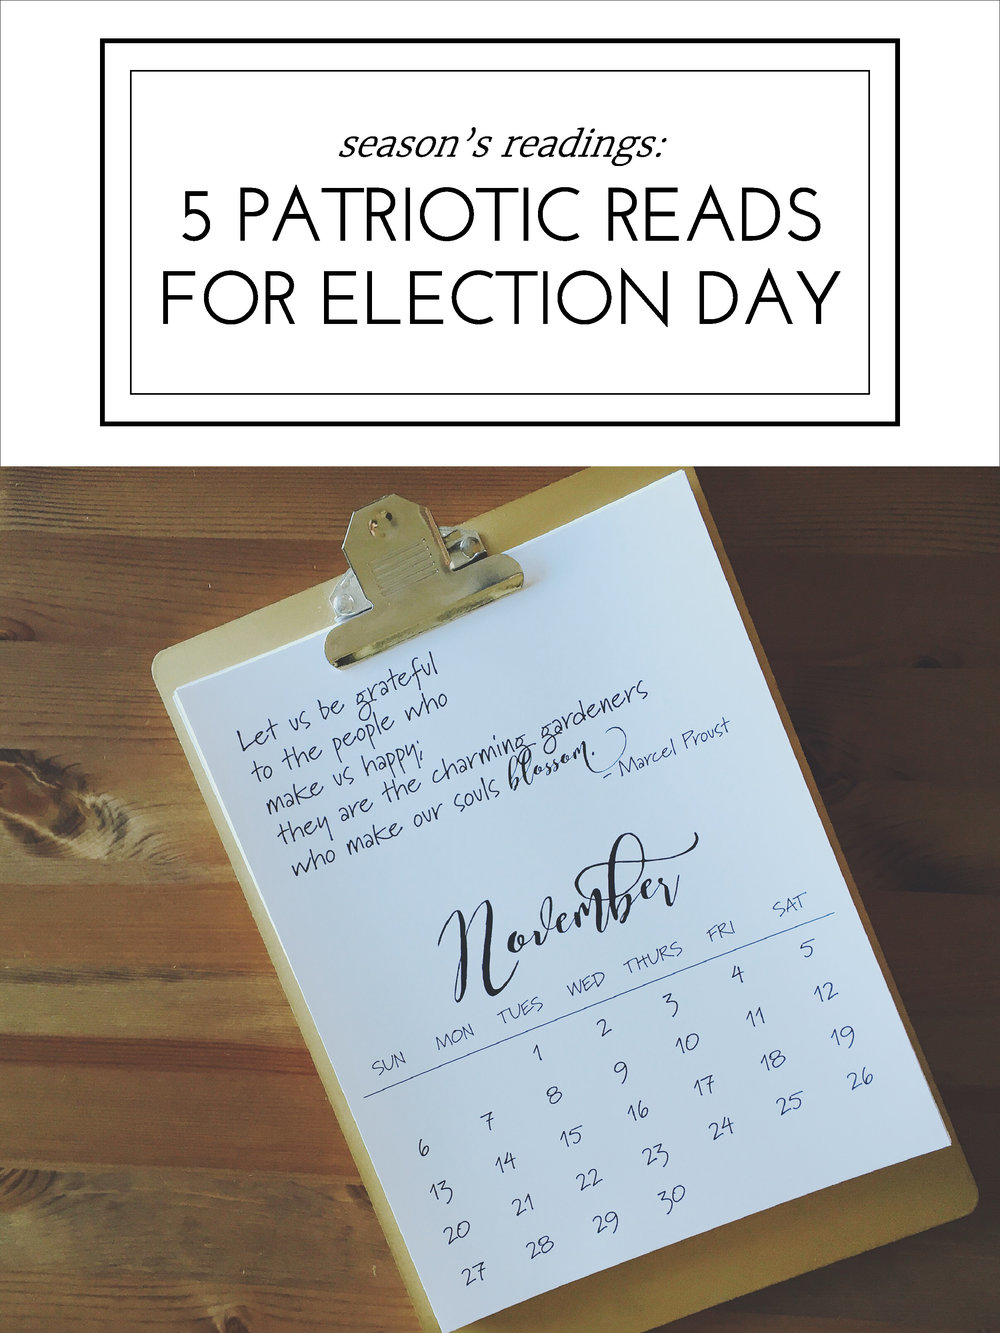 5 Patriotic Reads for Election Day